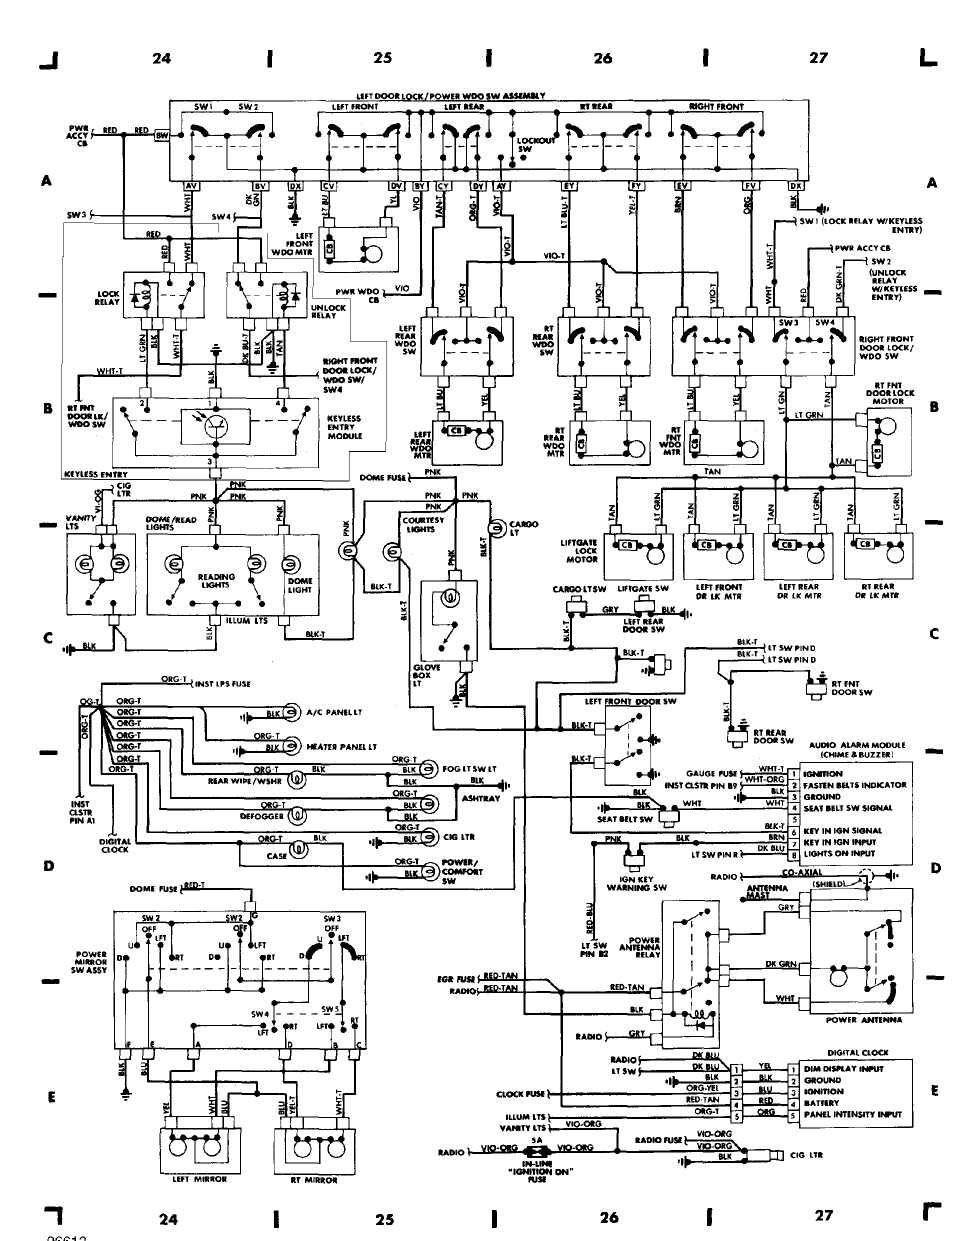 wiring_diagrams_html_61f5e0ad wiring diagrams 1984 1991 jeep cherokee (xj) jeep jeep cherokee tail light wiring diagram at gsmx.co